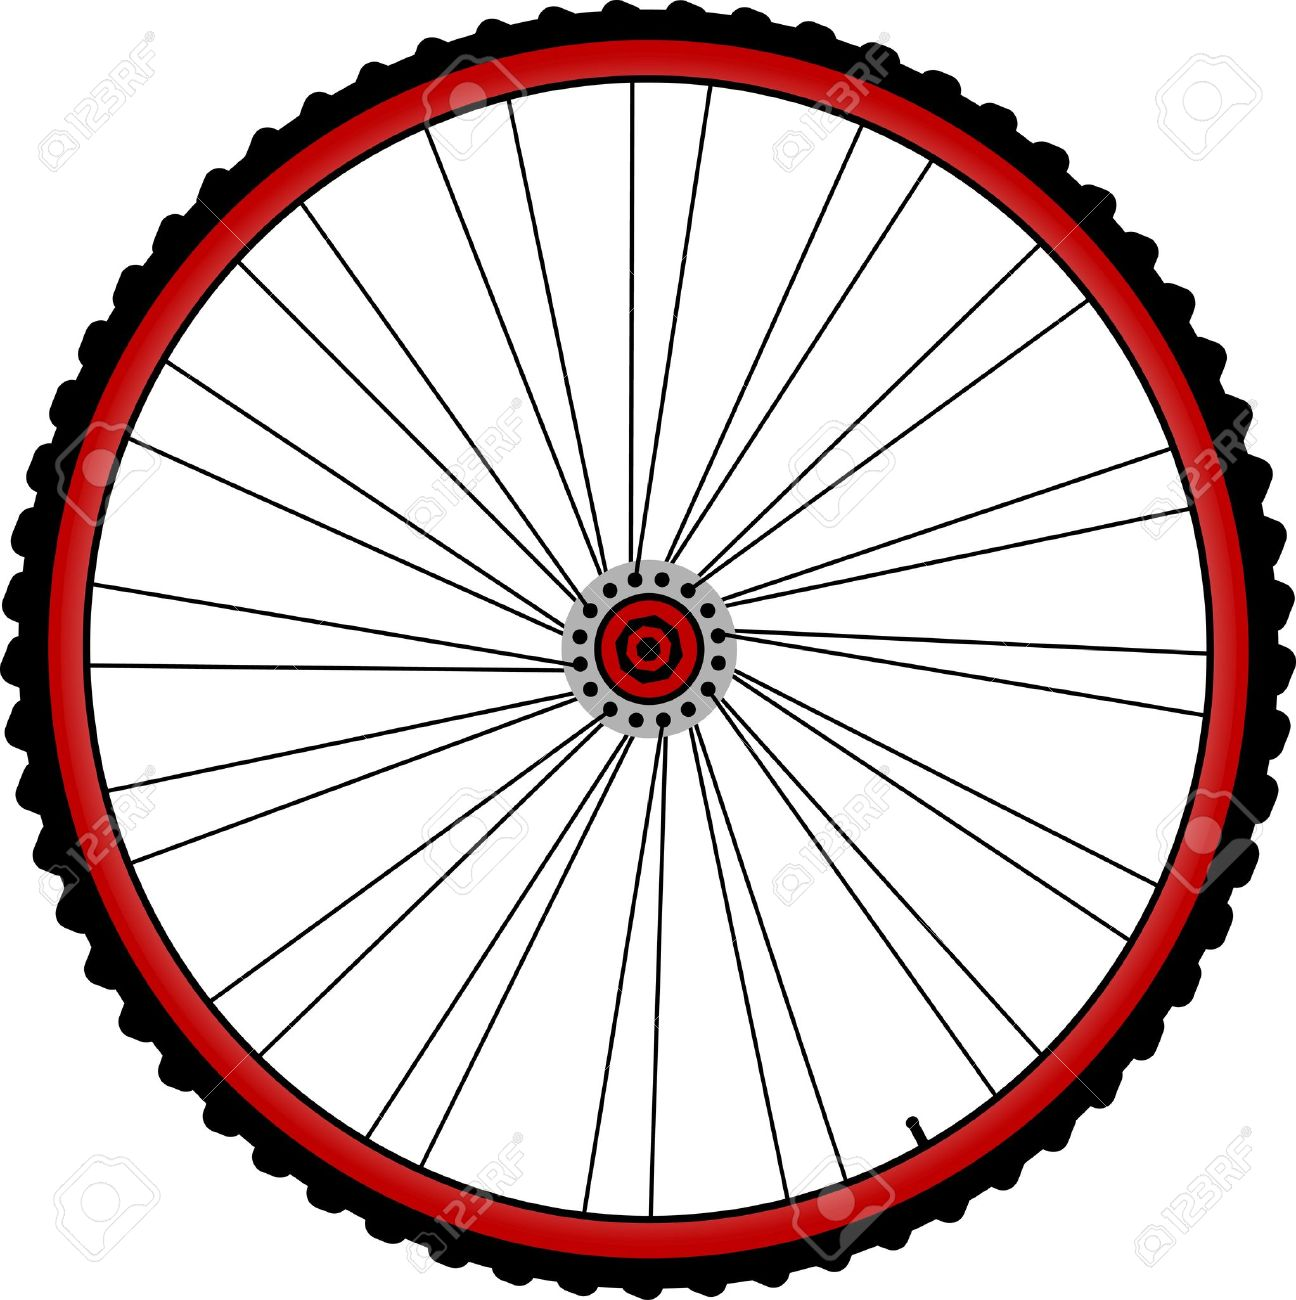 Bicycle Wheels With Spokes And Tires Isolated On White Royalty.